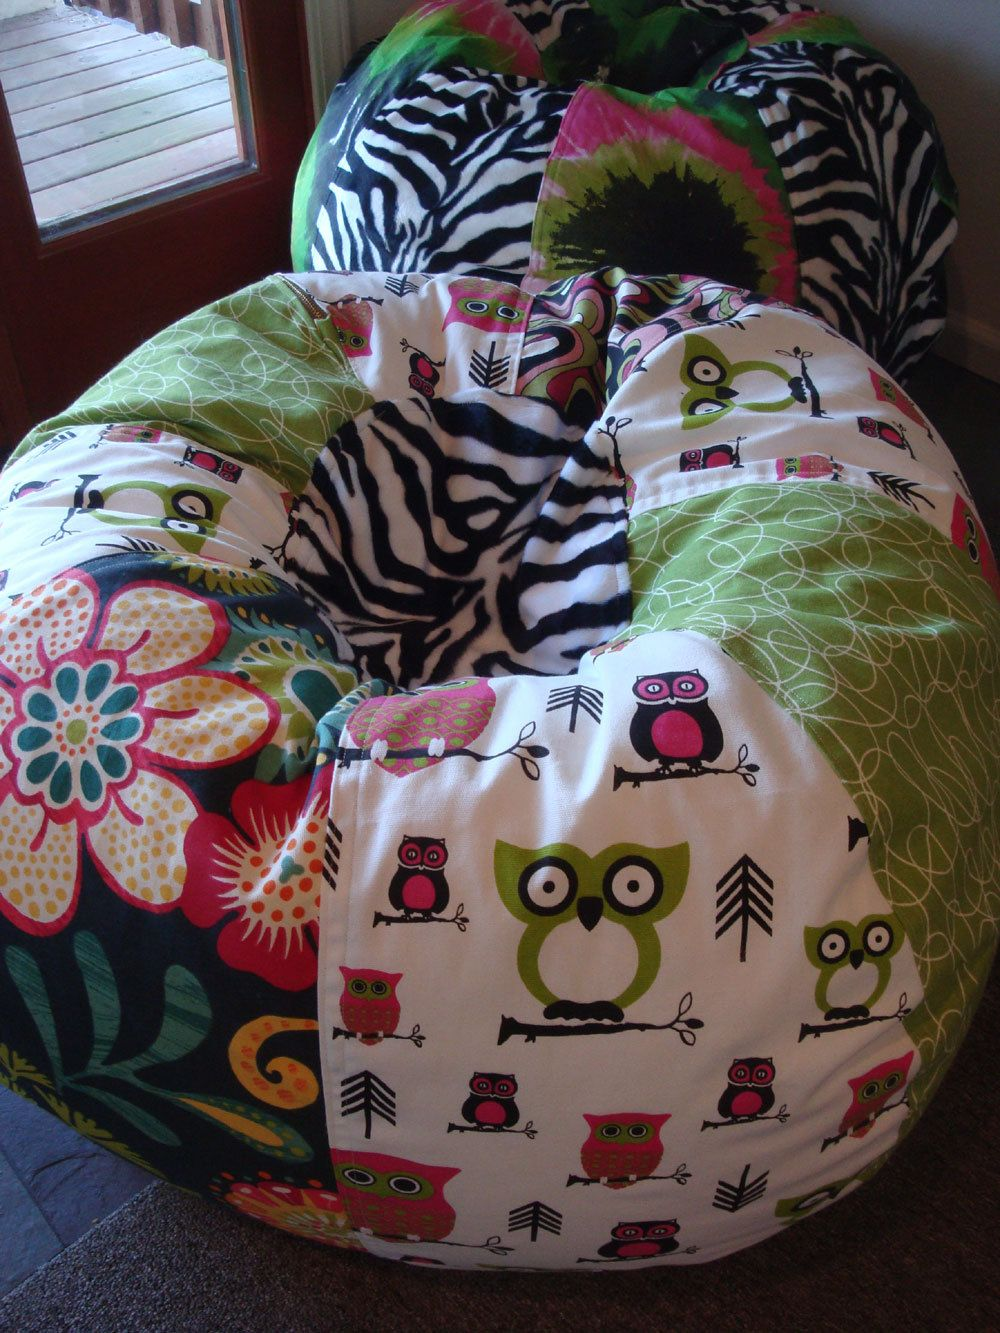 Funky Retro Owls Floral And Zebra Bean Bag Chair Di Paniolo